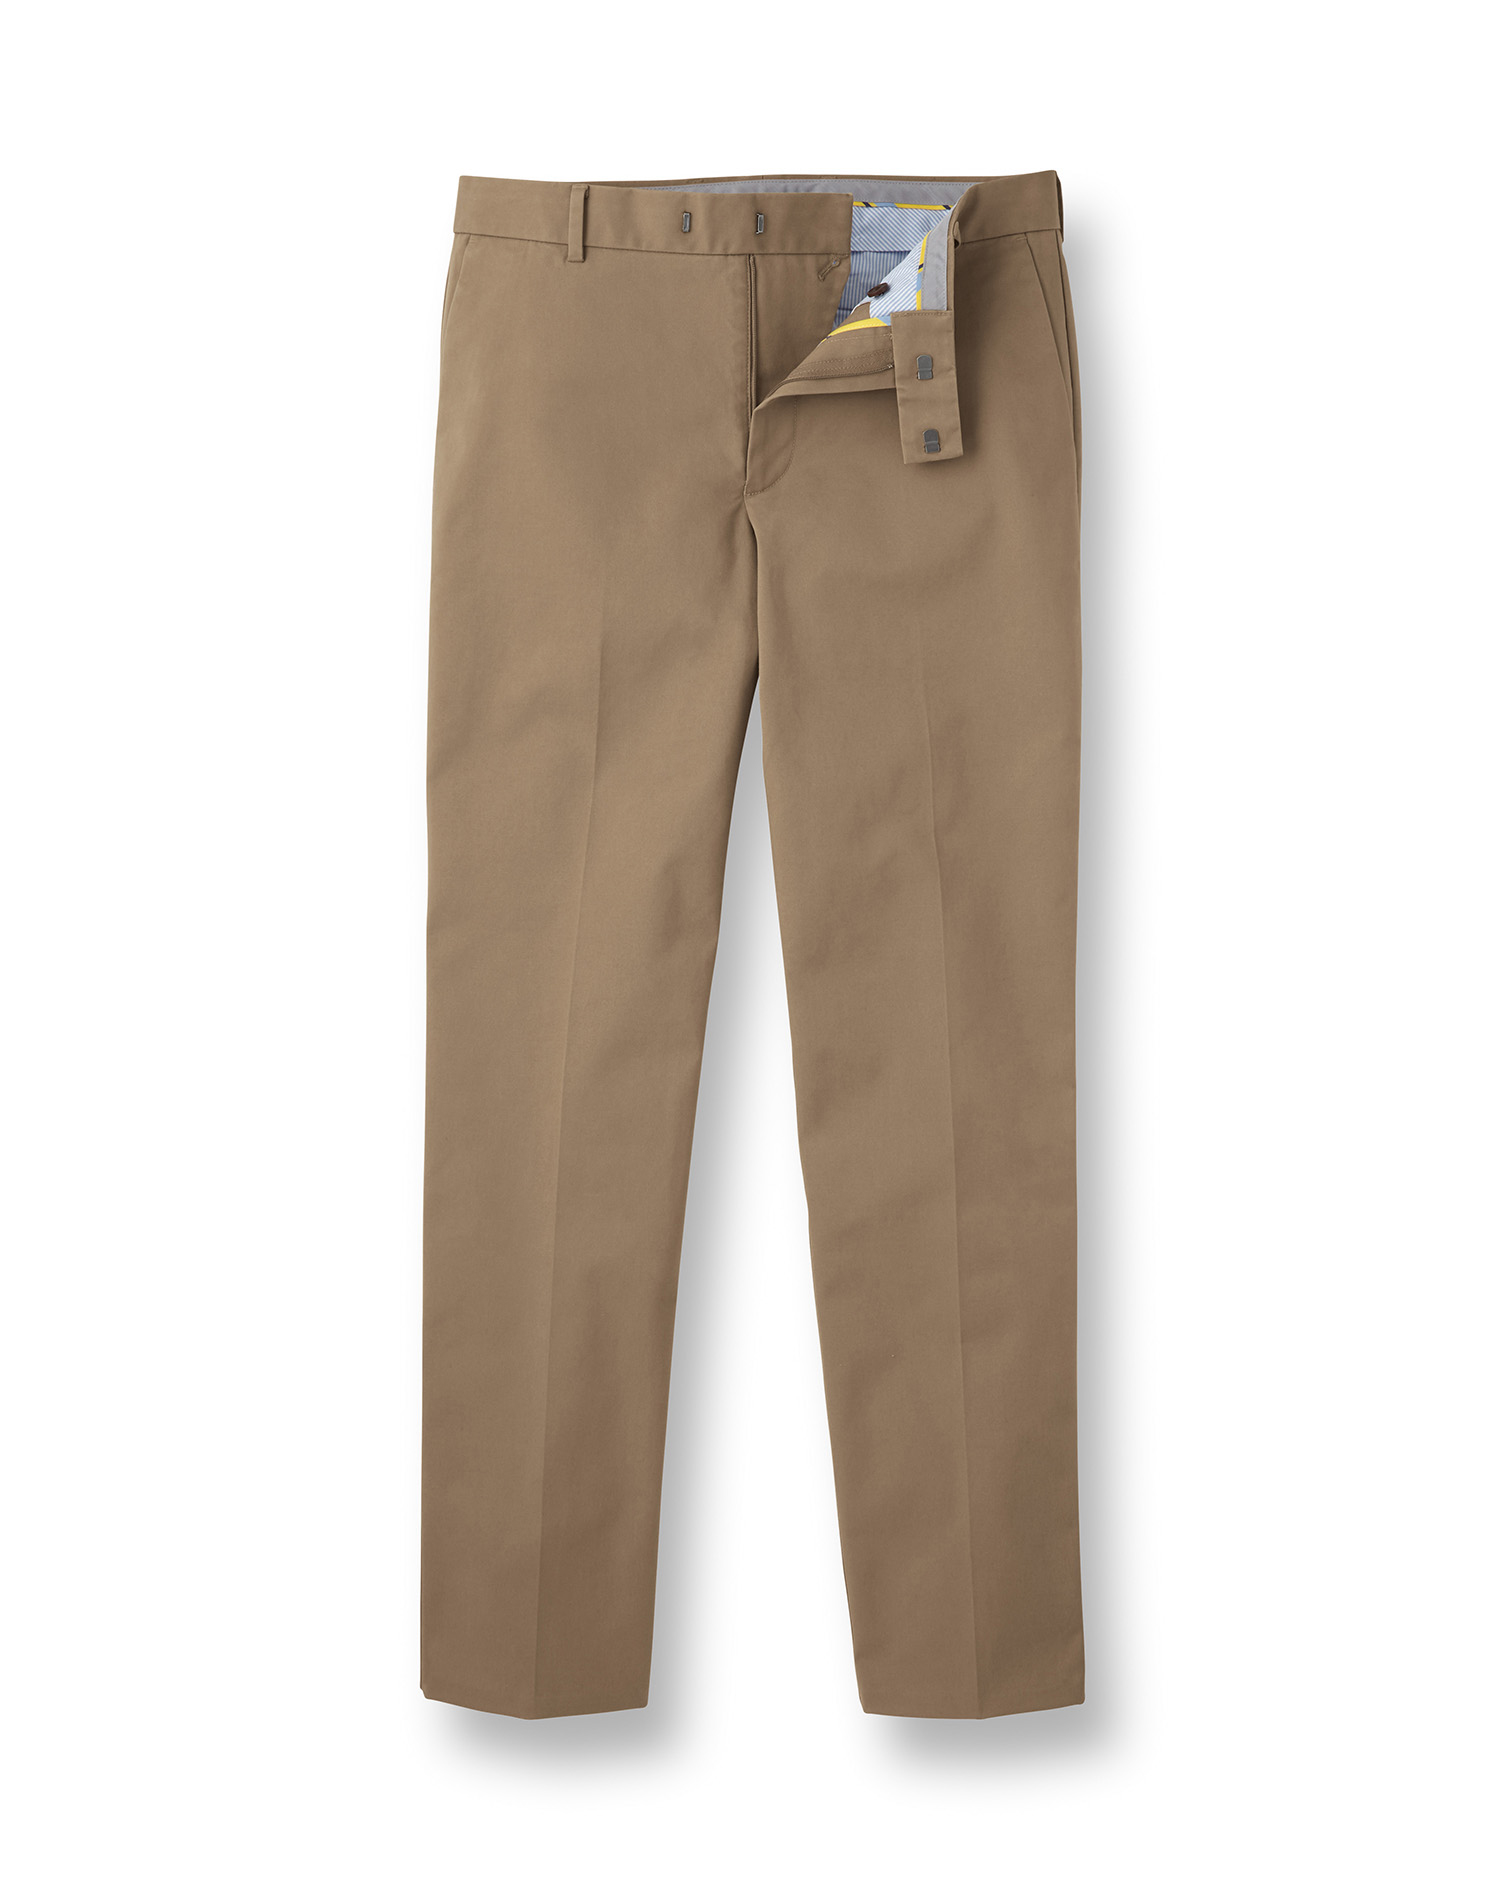 Fawn Flat Front Non-Iron Cotton Chino Trousers Size W34 L30 by Charles Tyrwhitt